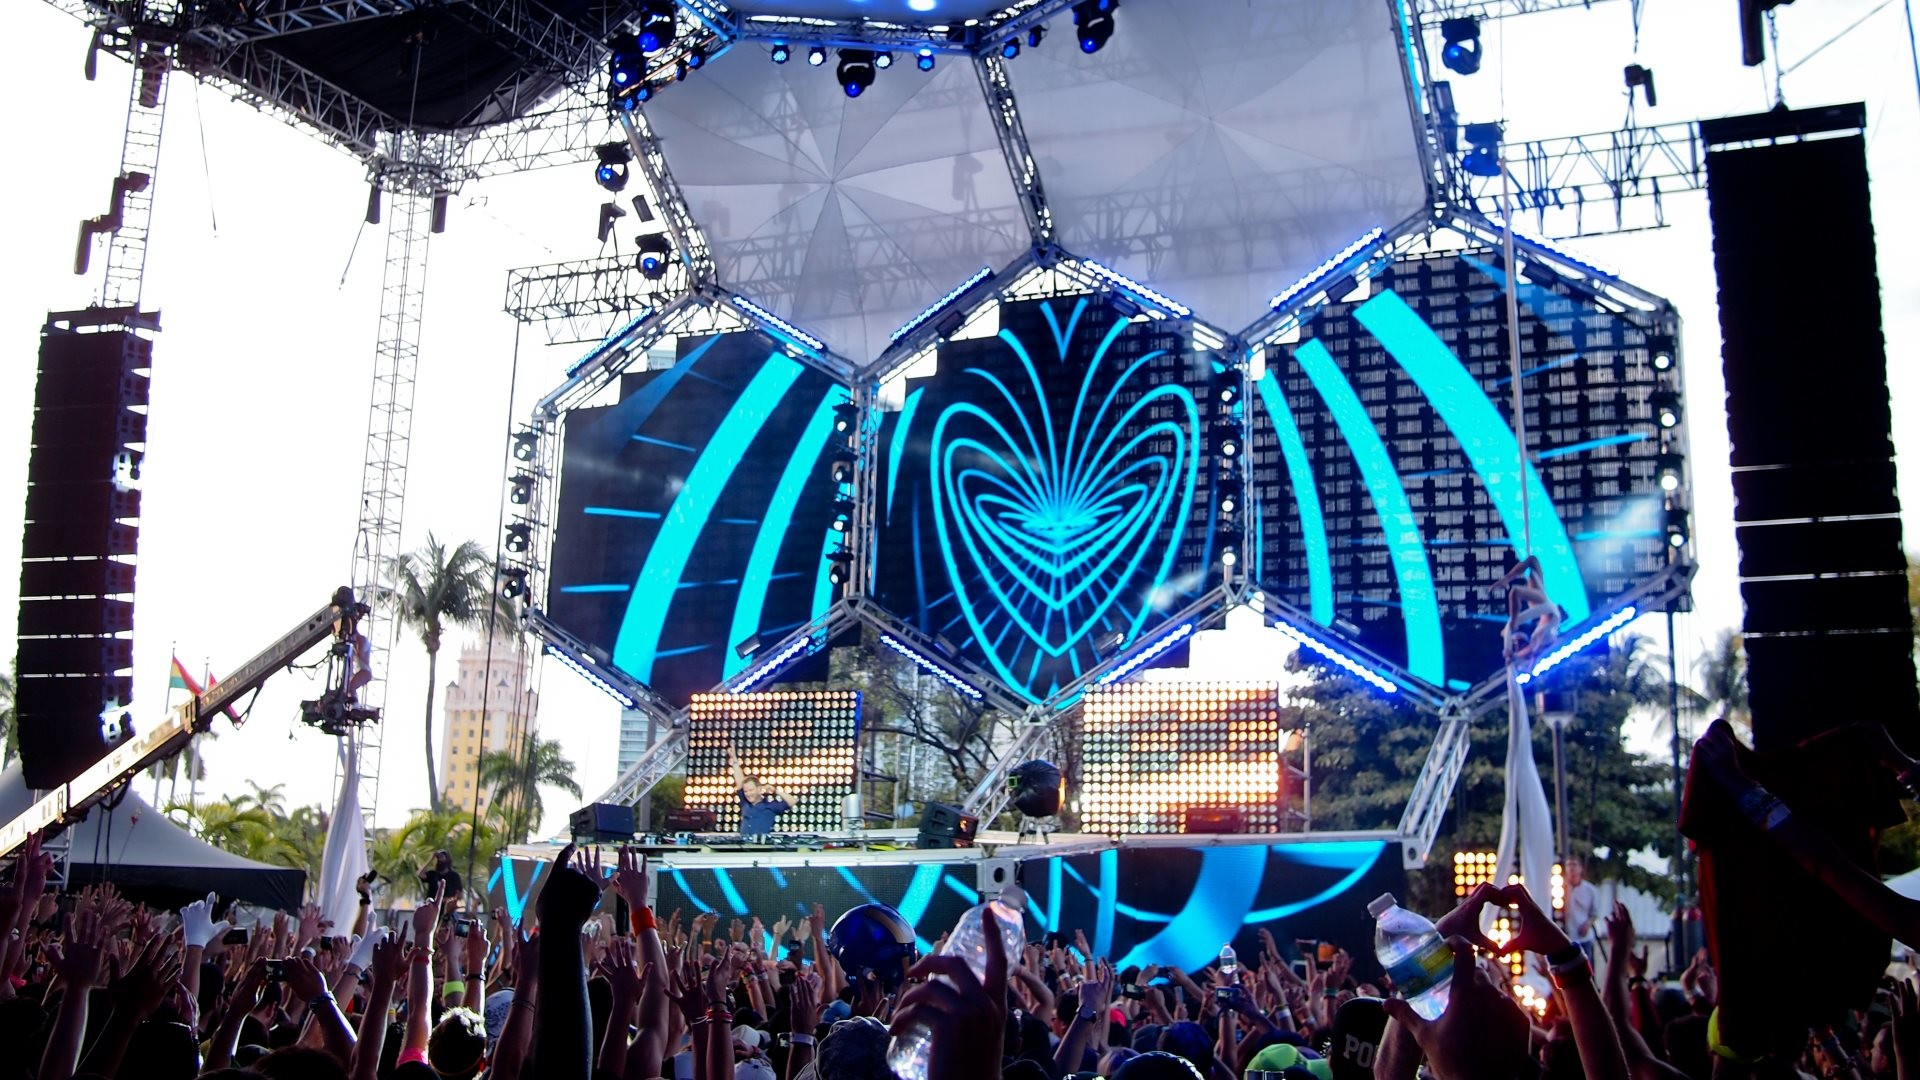 1920x1080 UMF - Ultra Music Festival Miami HD Wallpapers. 4K Wallpapers